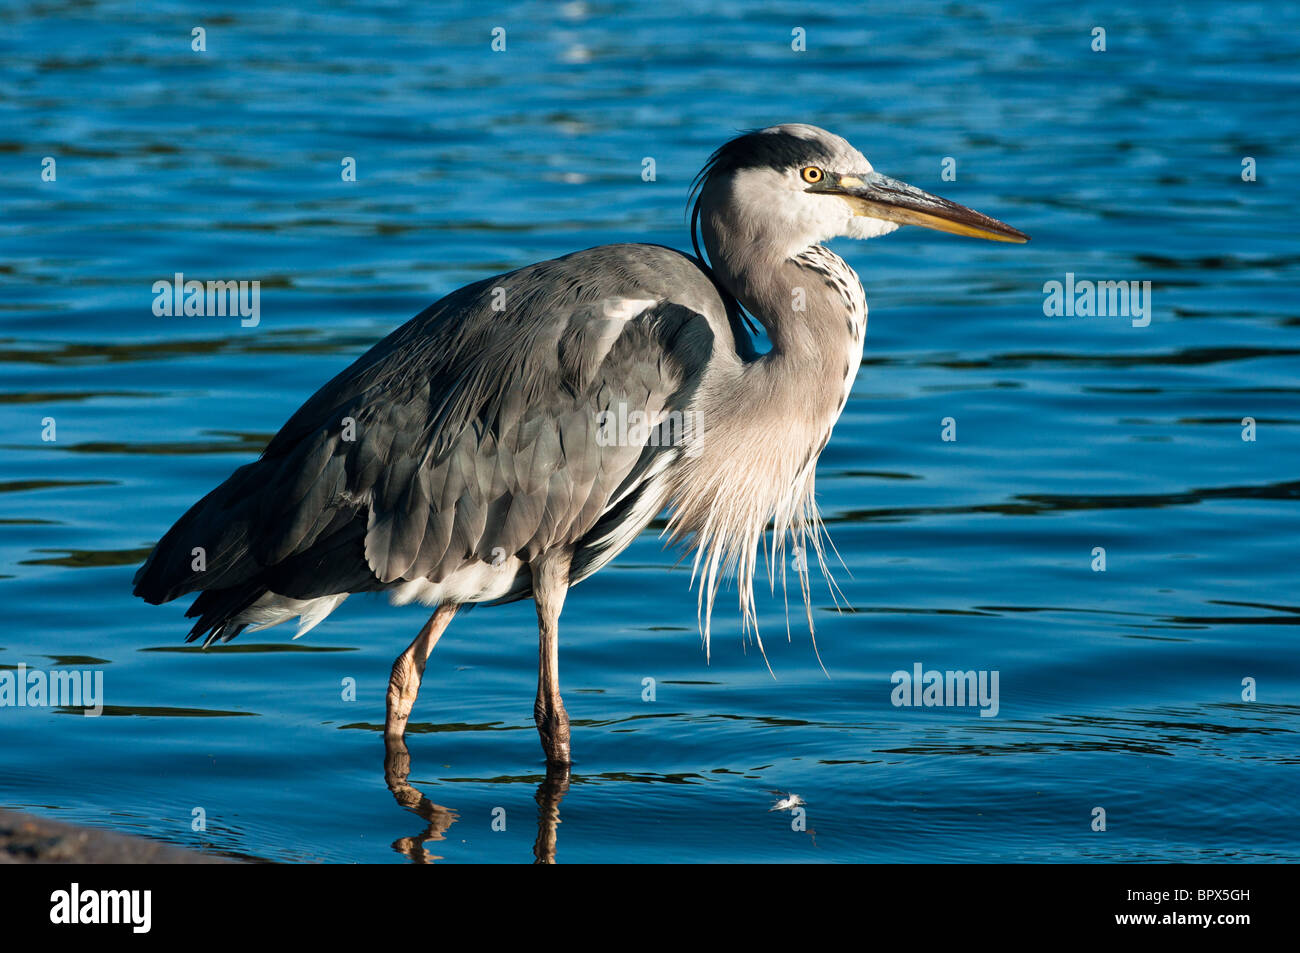 A grey heron seen in the Serpentine in Hyde park, London, in early morning light. - Stock Image